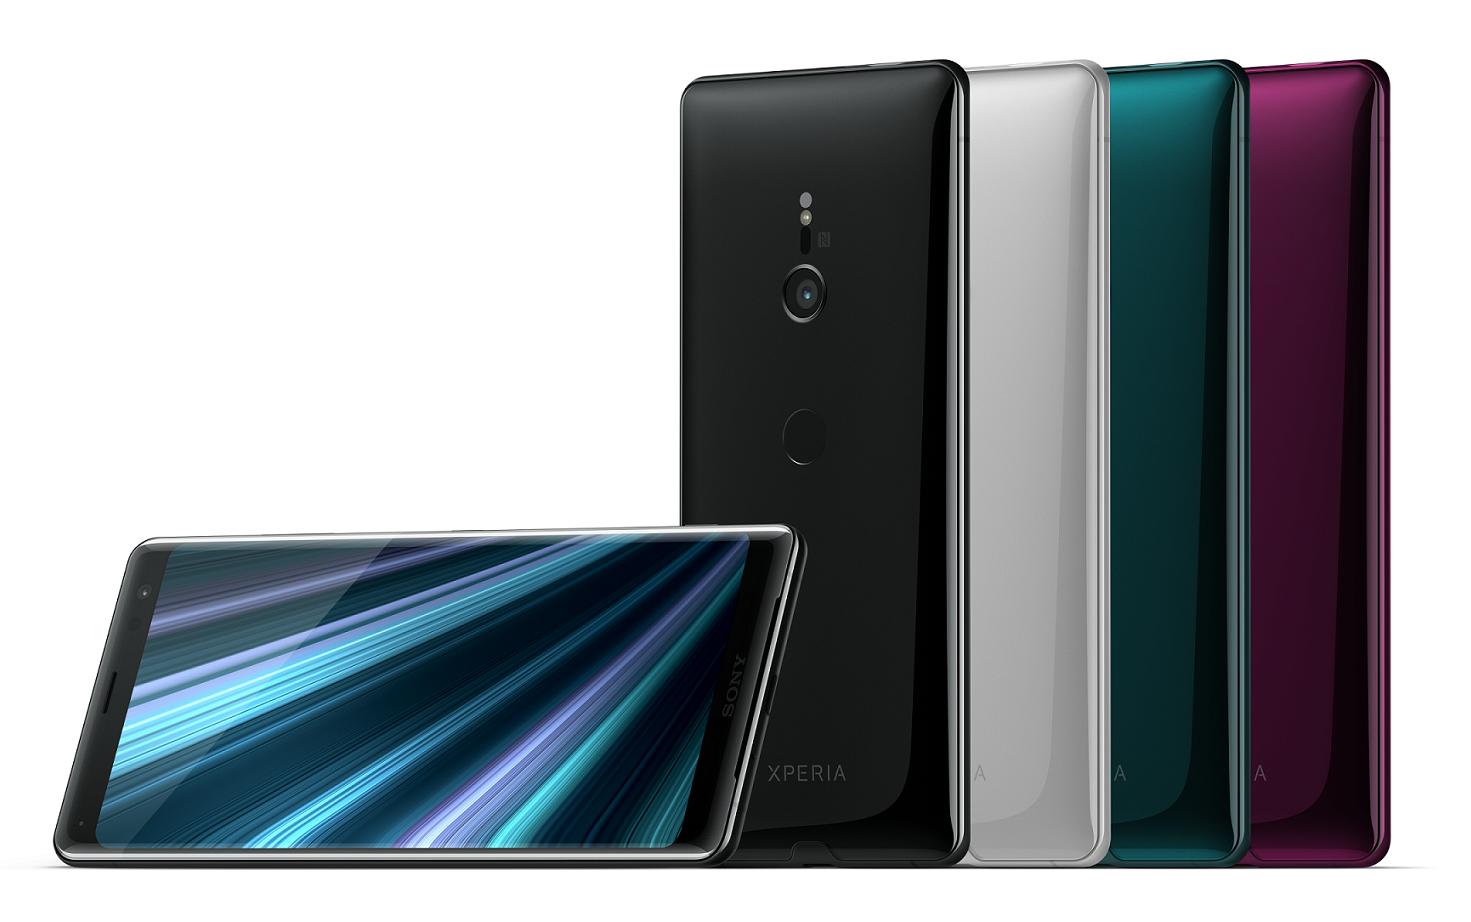 Sony Xperia XZ3 drops to $487 ($113 off) on Amazon